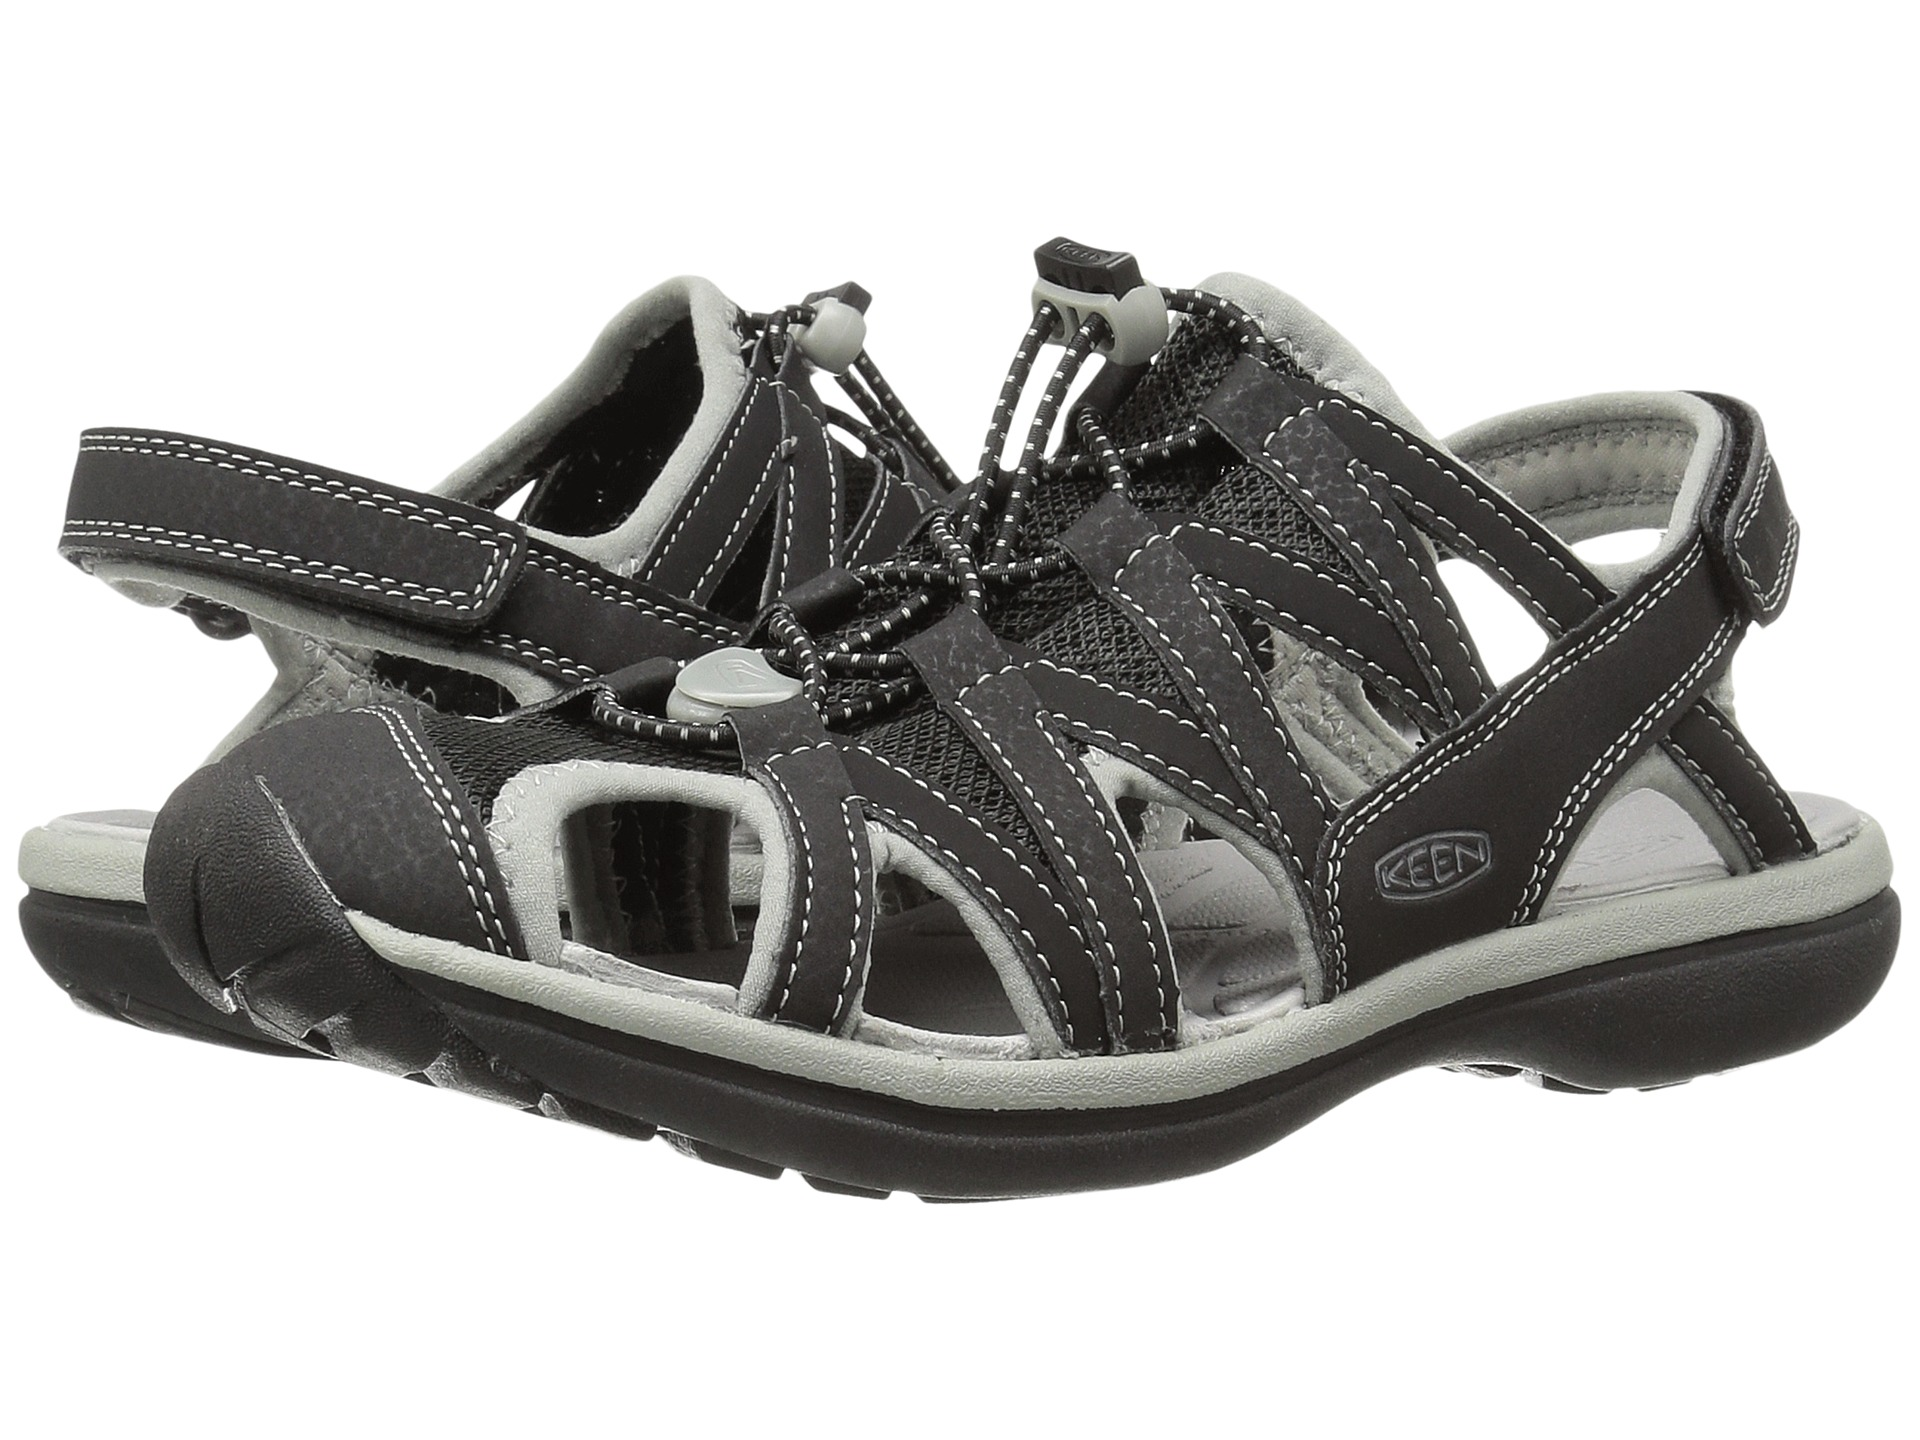 Black sandals closed toe - View More Like This Keen Sage Sandal